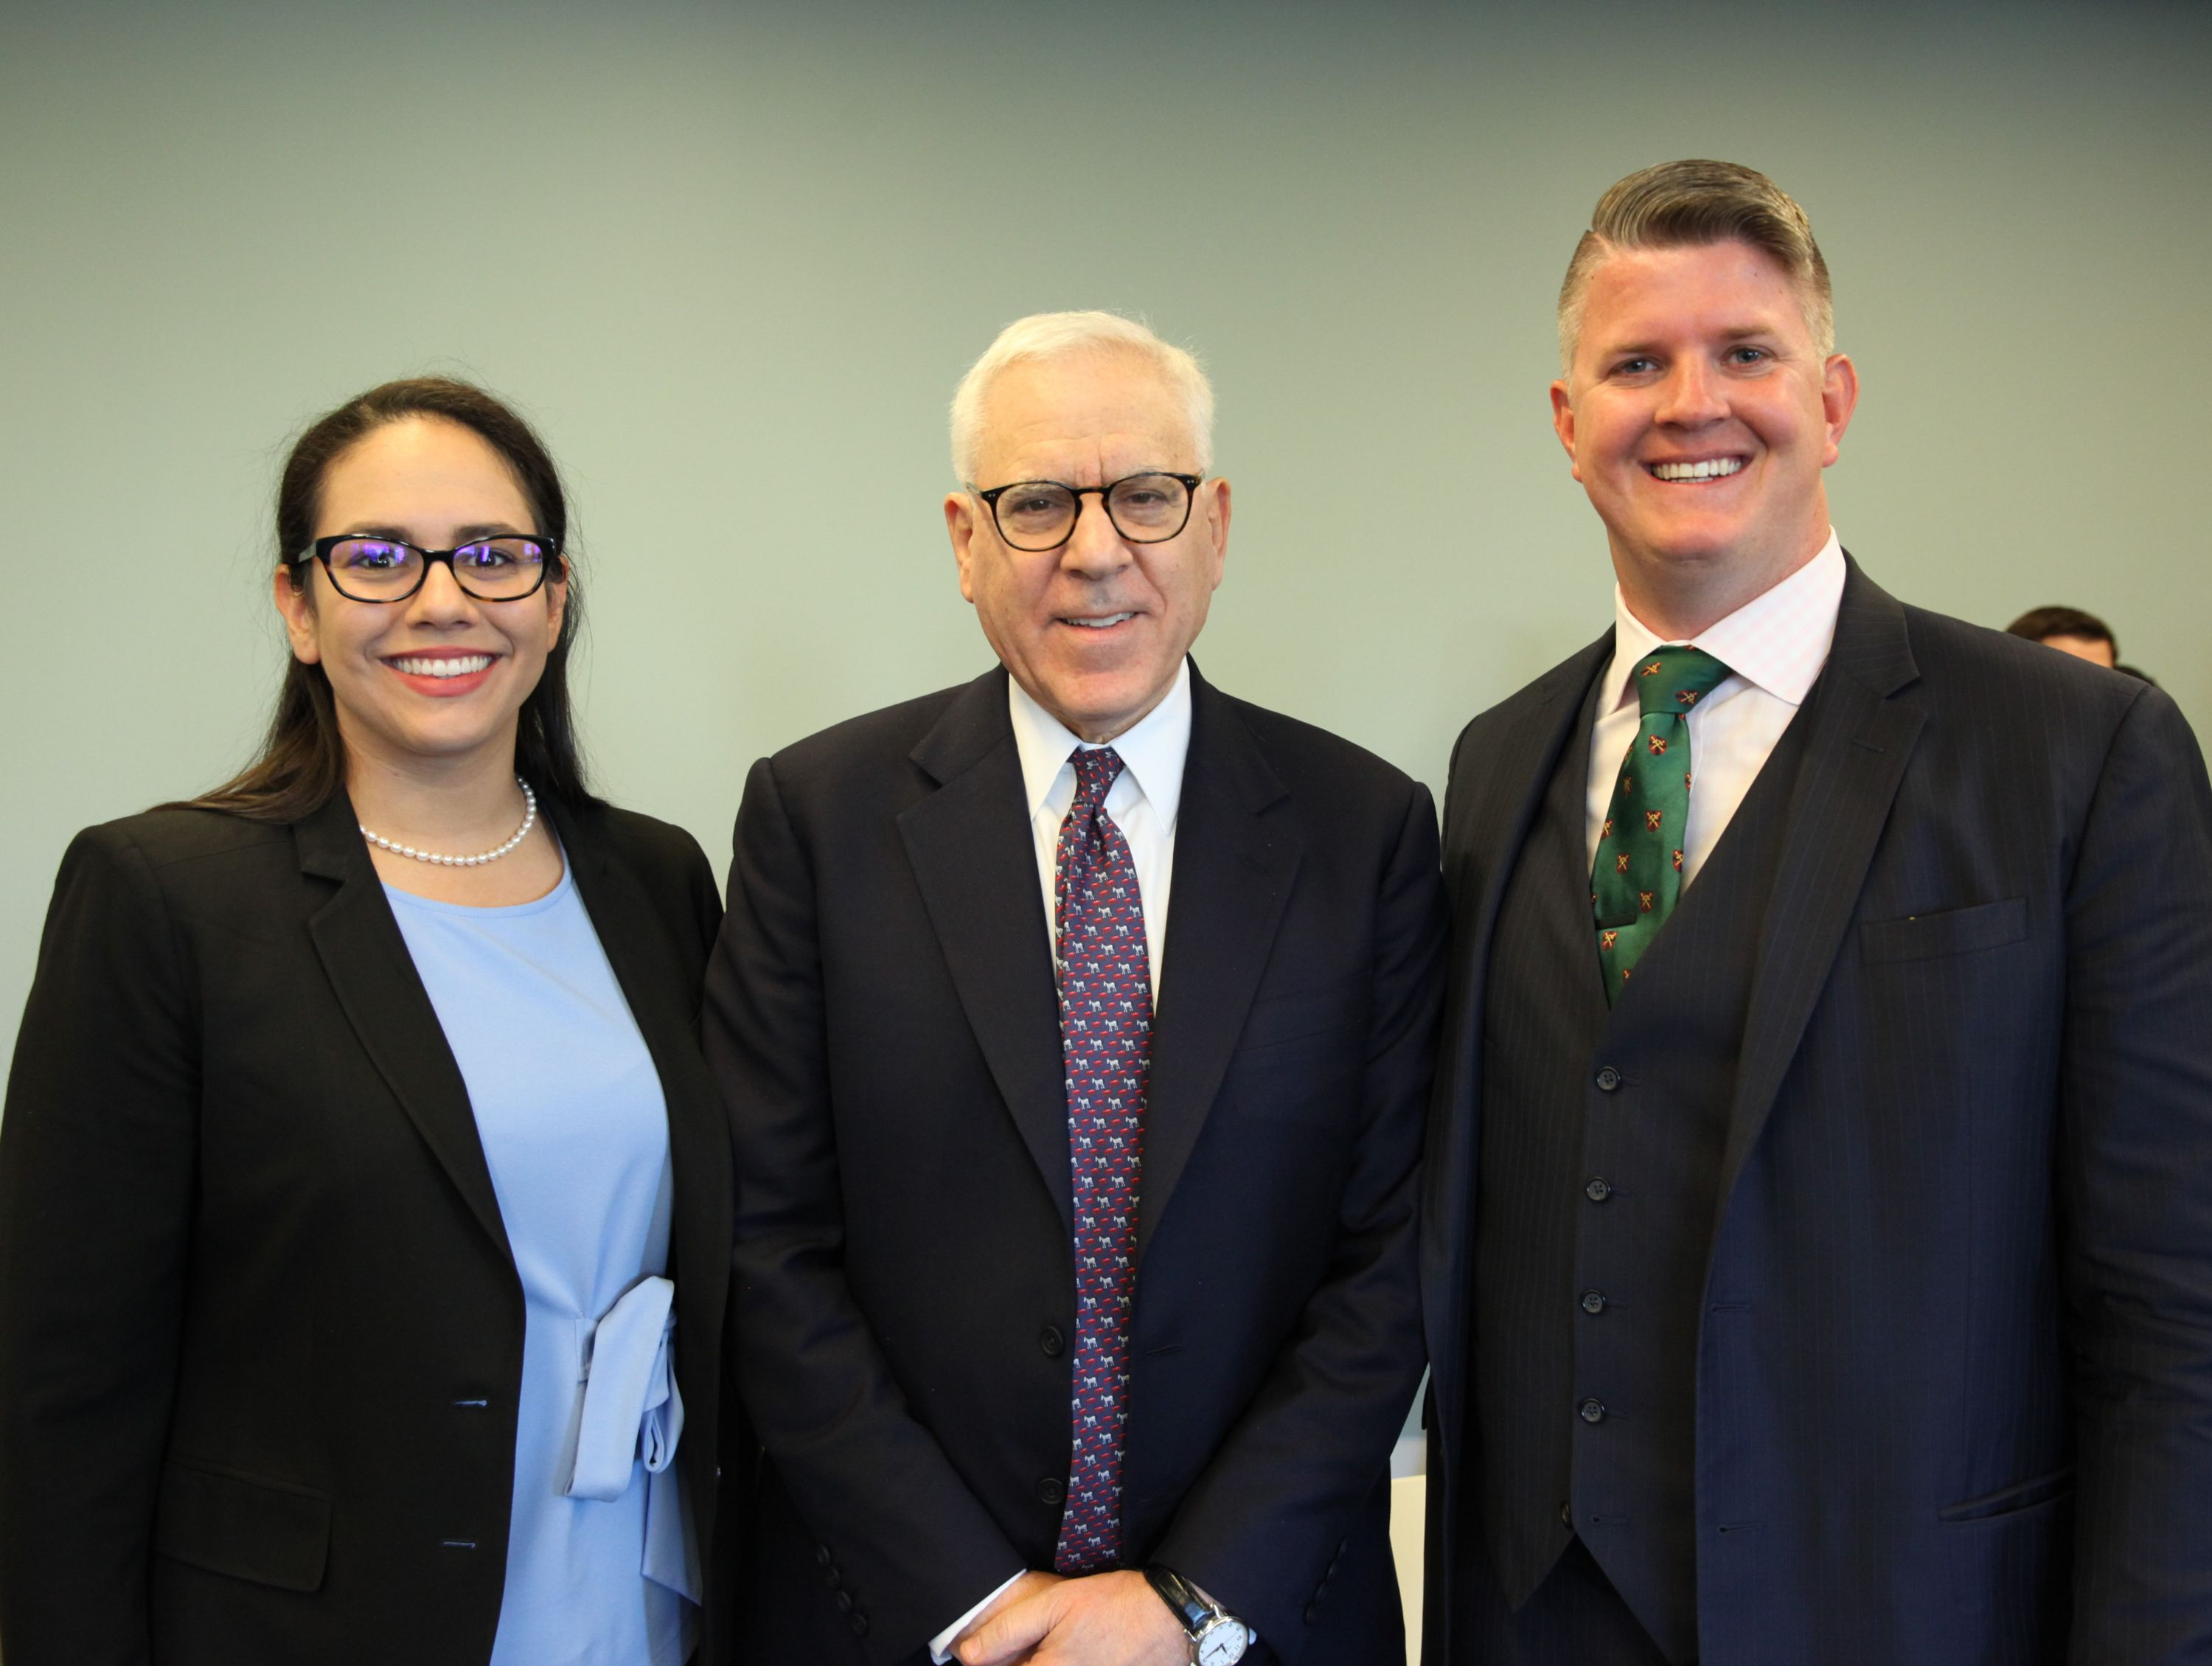 David Rubenstein (middle) with event organizers: students Christina Ravelo and Chris White.